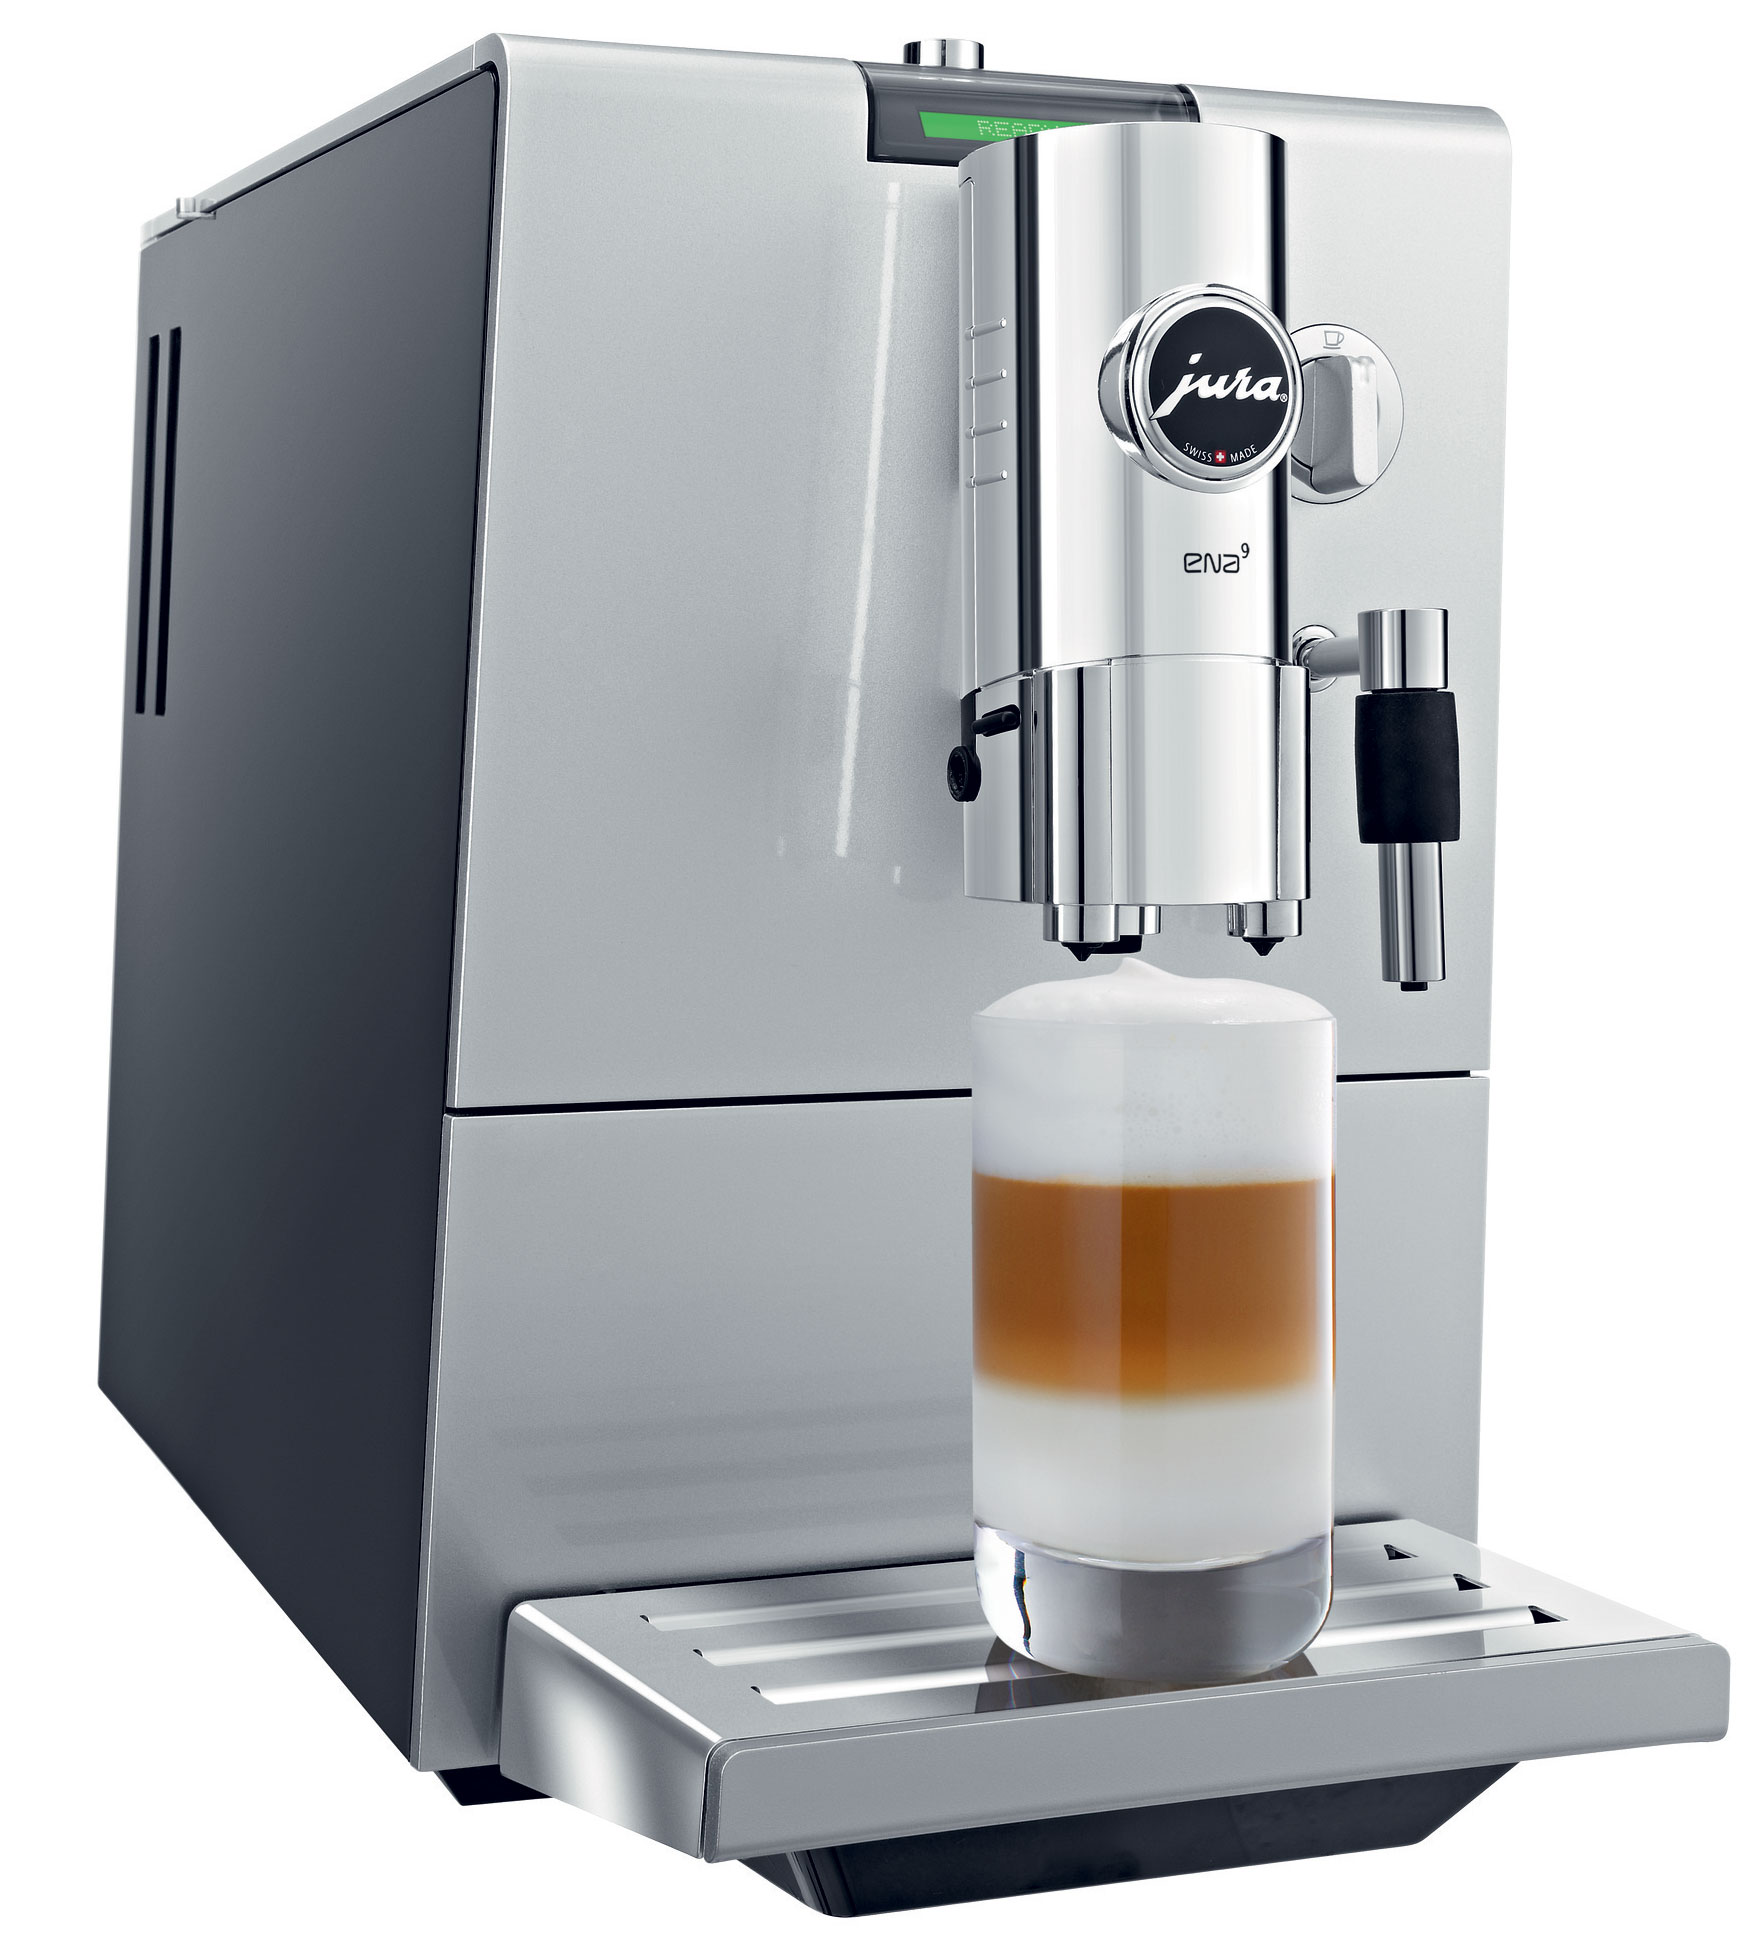 refurbished jura capresso ena 9 one touch automatic coffee. Black Bedroom Furniture Sets. Home Design Ideas